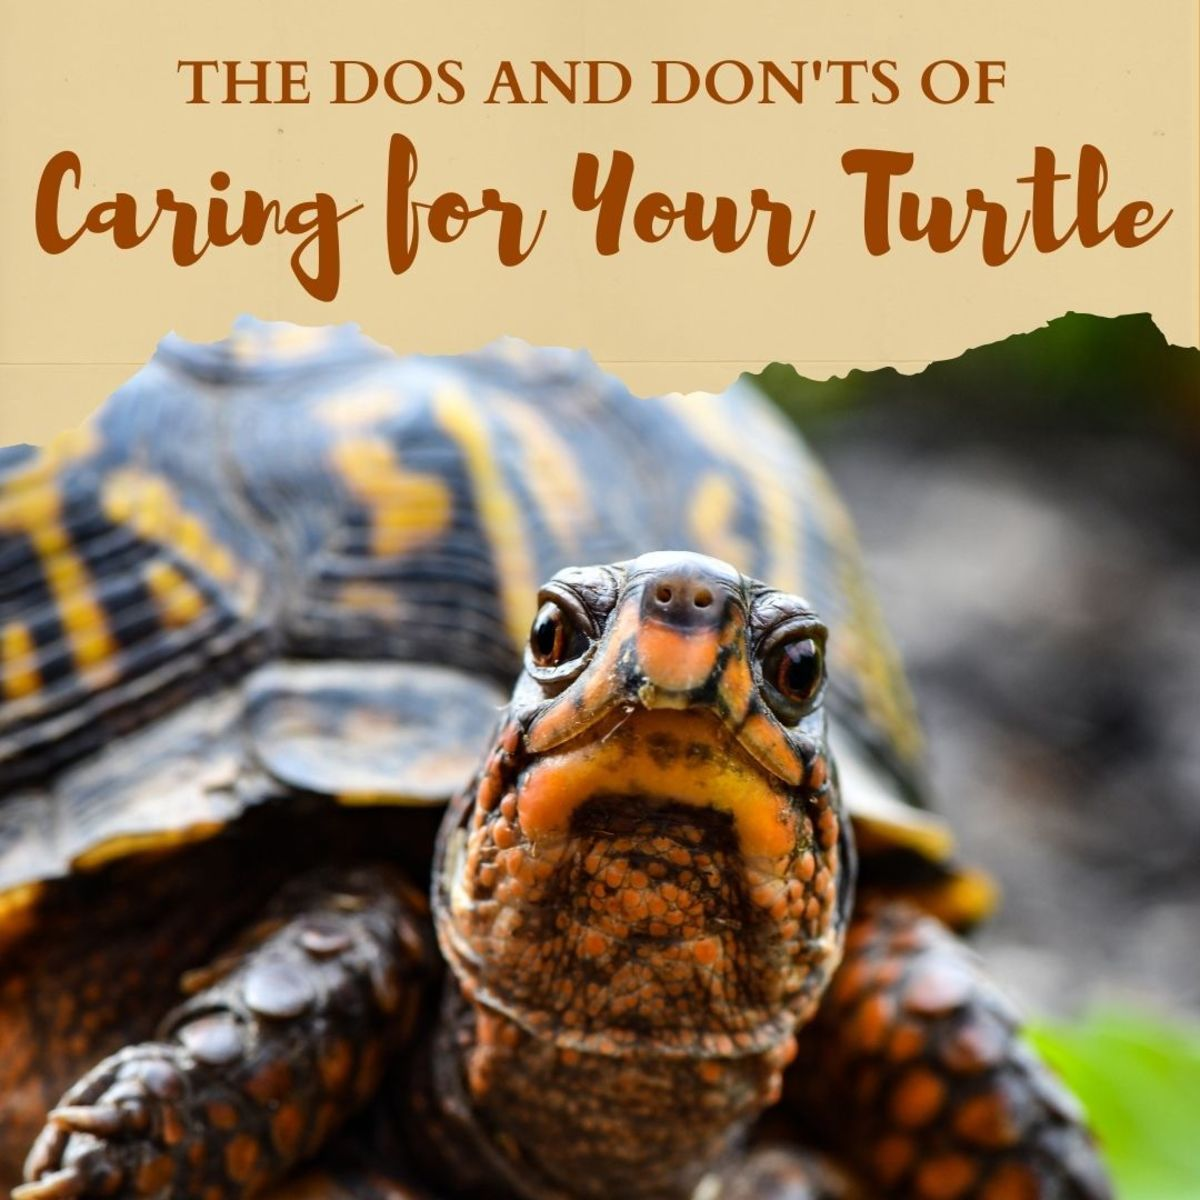 The Dos and Don'ts of Turtle Care